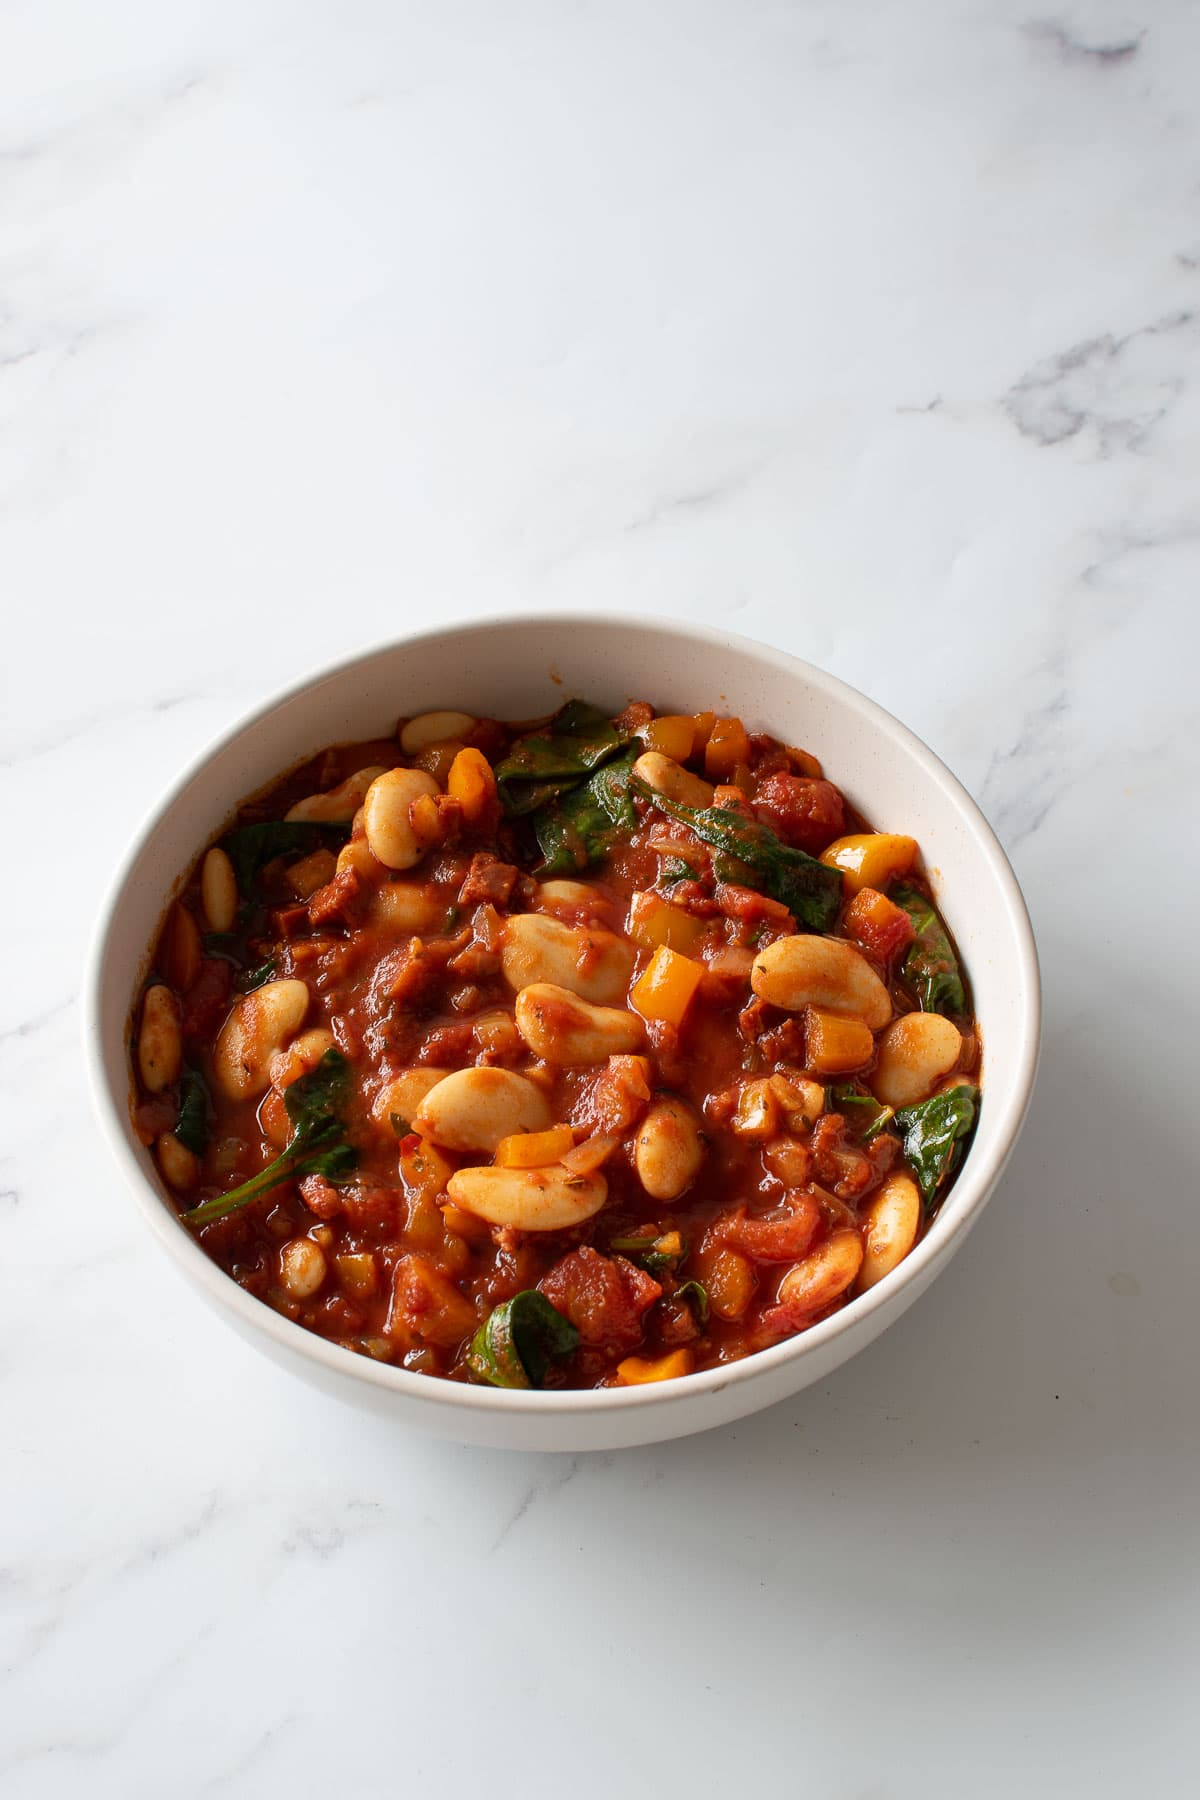 A bowl of stew with chorizo and beans on a table.